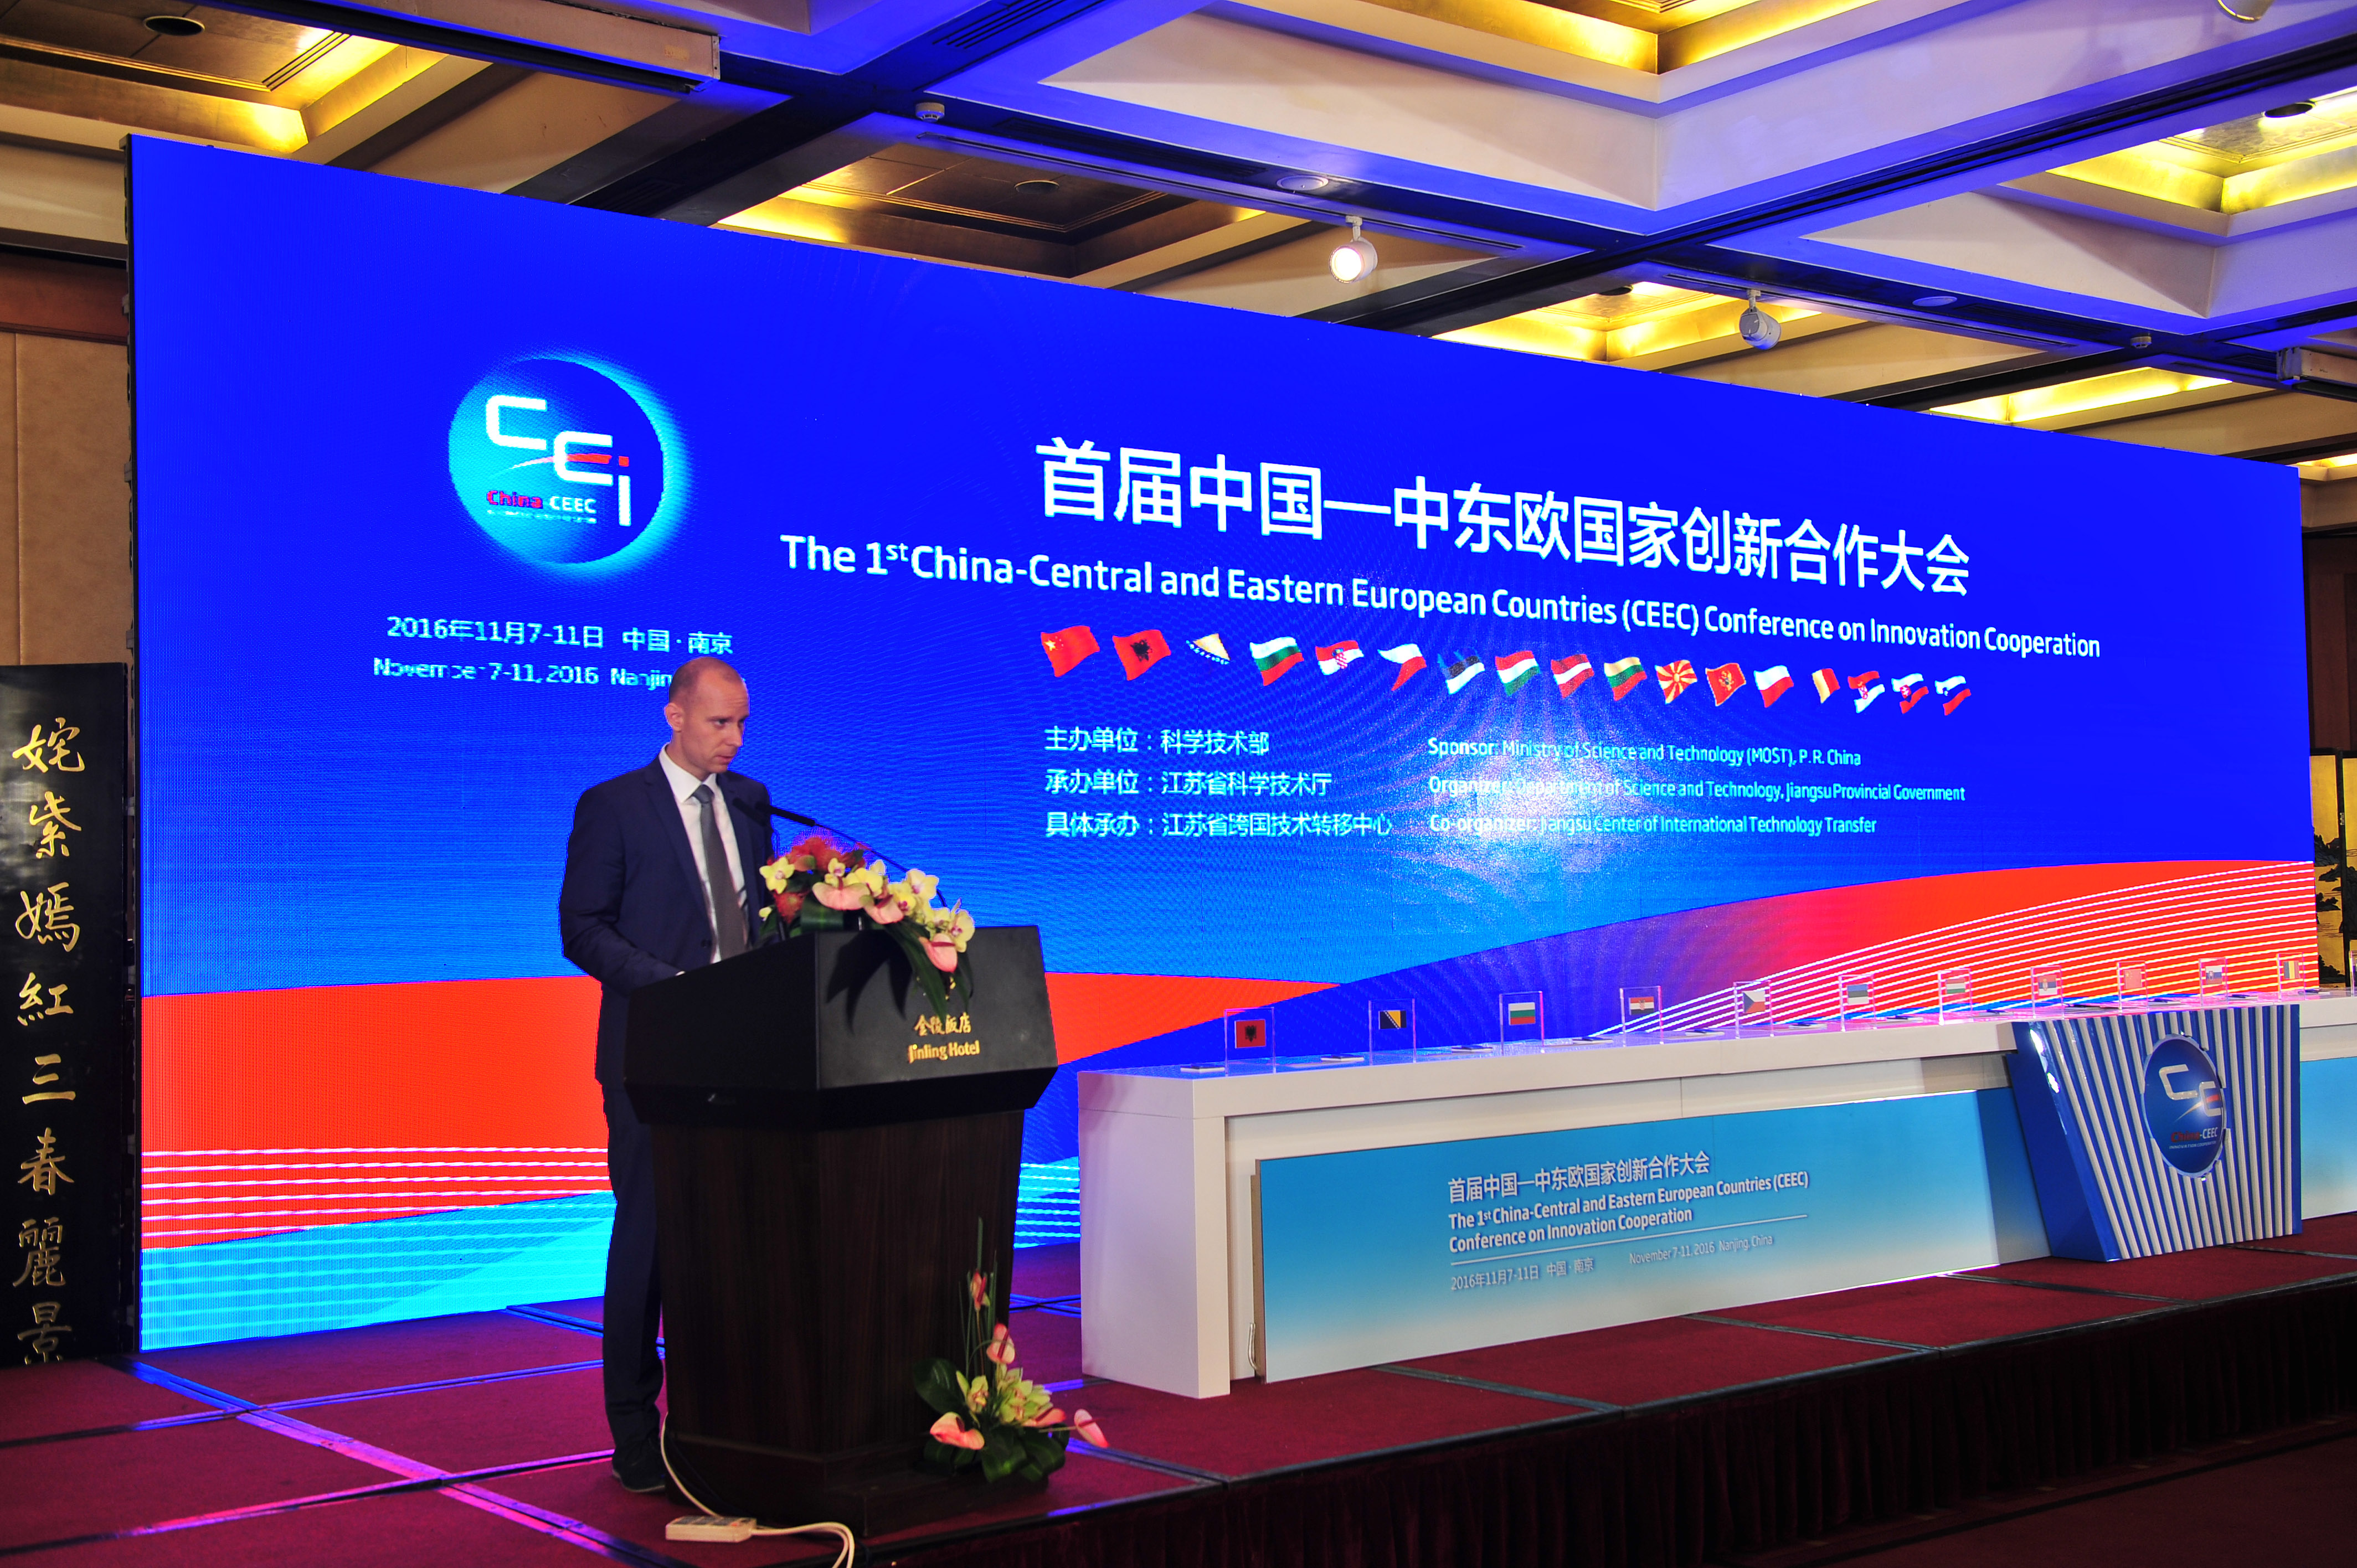 1st China – CEEC Conference on Innovation Cooperation & 3rd China-CEEC Seminar on Innovation, Cooperation in Technology and International Transfer of Technology